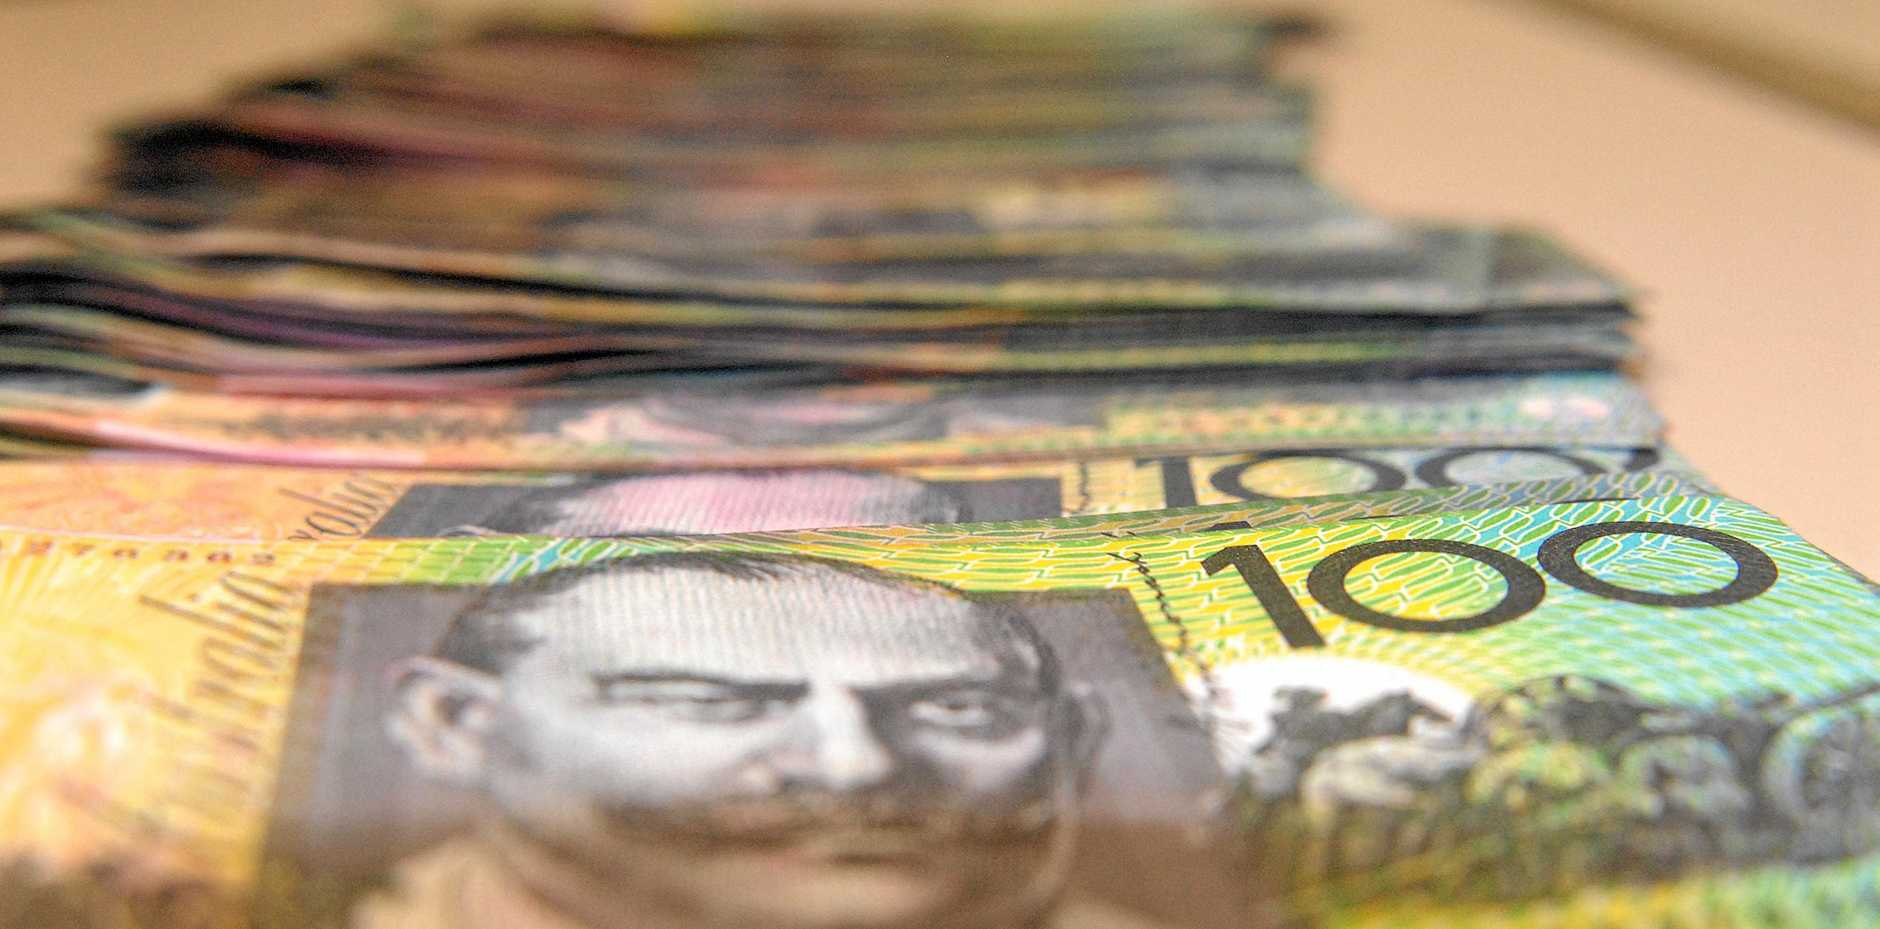 The Gympie postcode of 4570 has more than $22 million in lost and unclaimed superannuation sitting in super fund and ATO accounts.